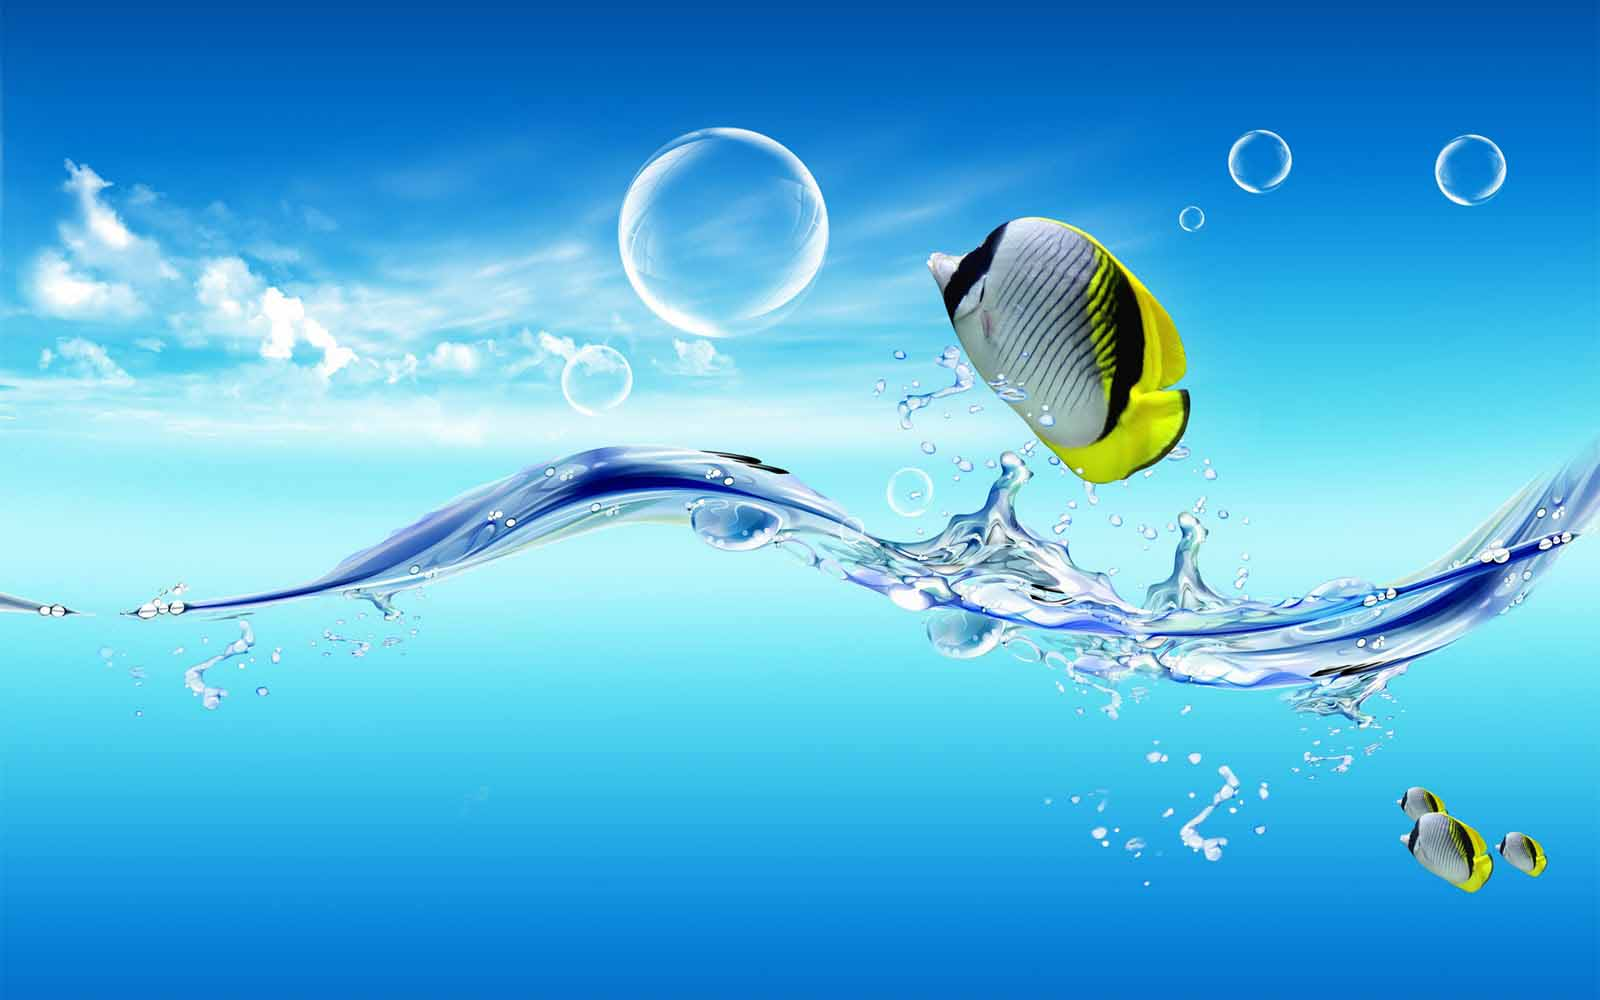 hd wallpapers 1080p widescreen,water,sky,liquid,illustration,stock photography